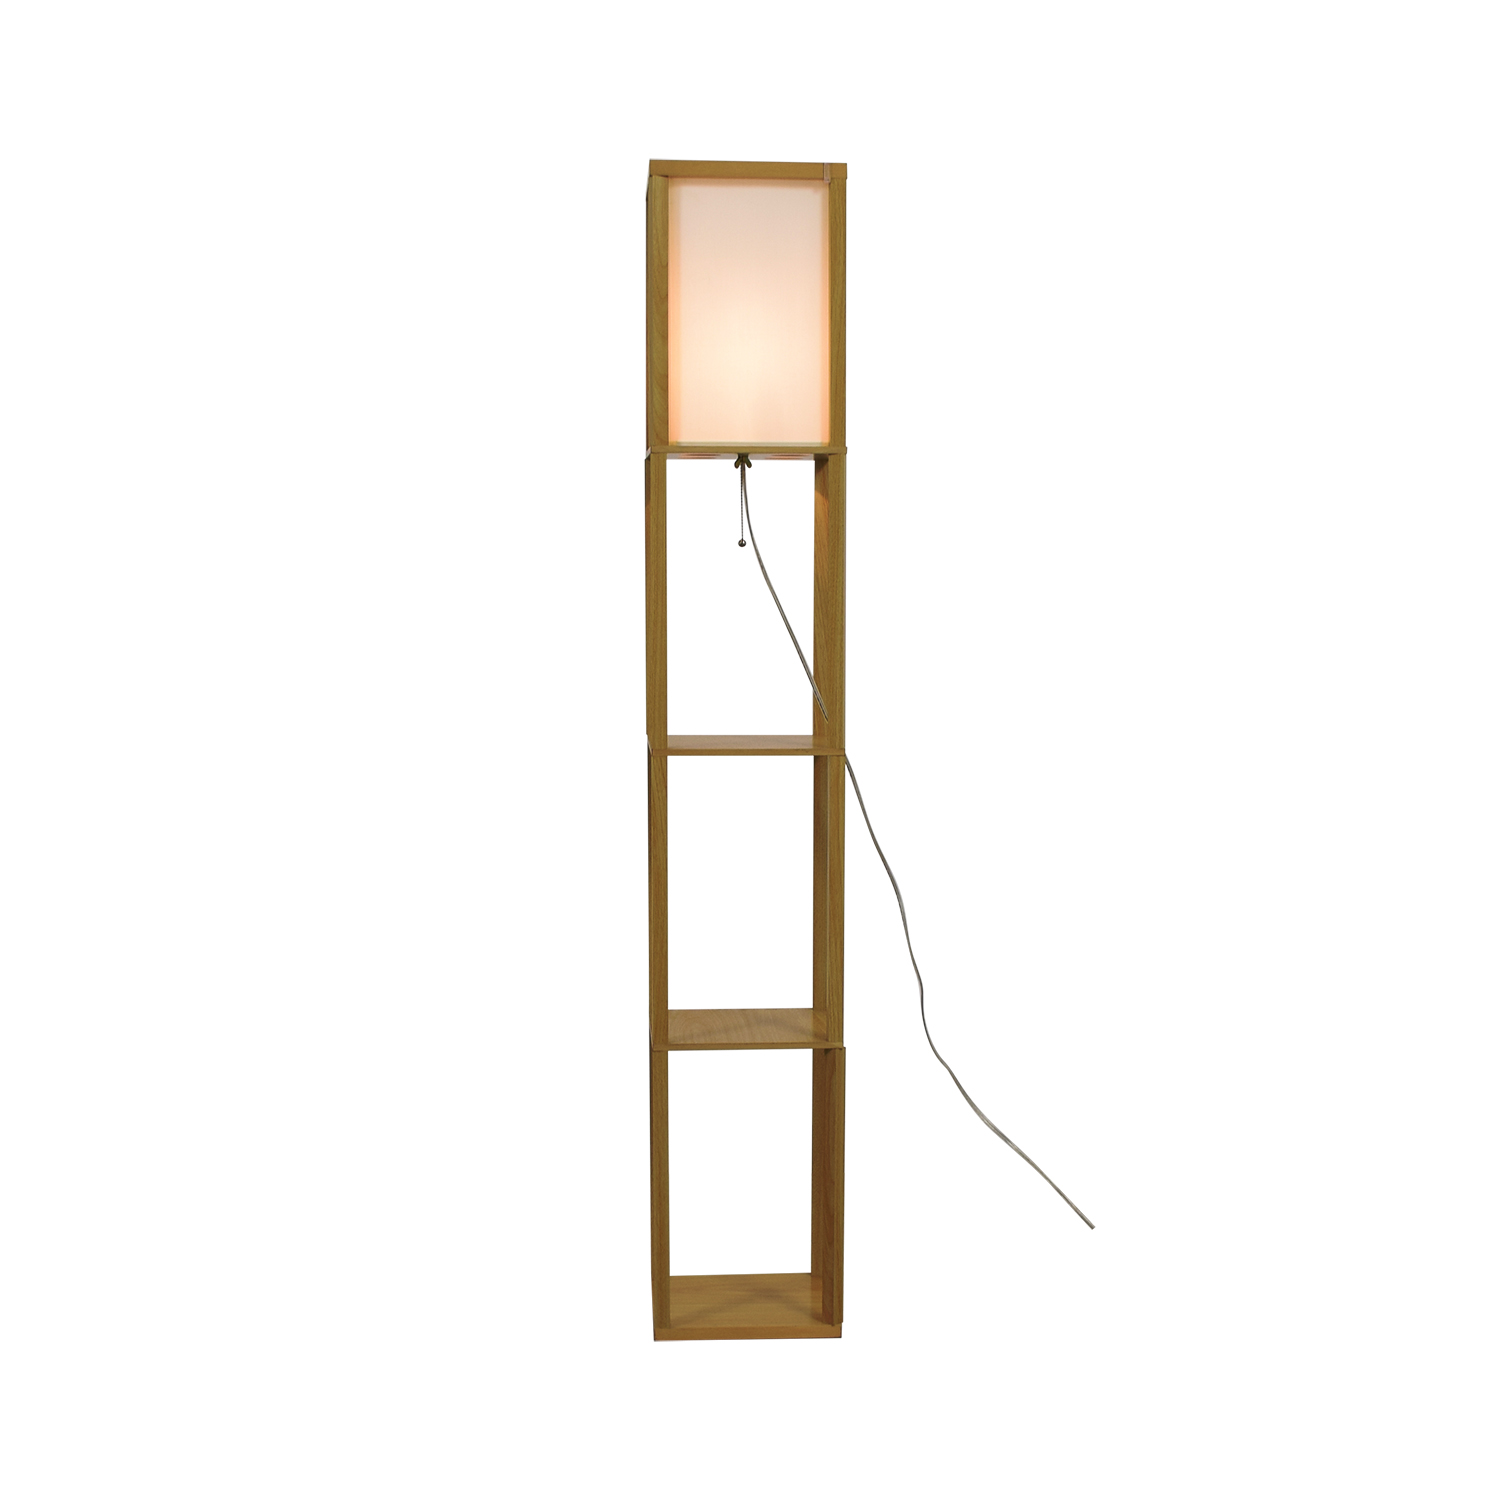 Light Accents Light Accents Wooden Floor Lamp with Linen Shade on sale